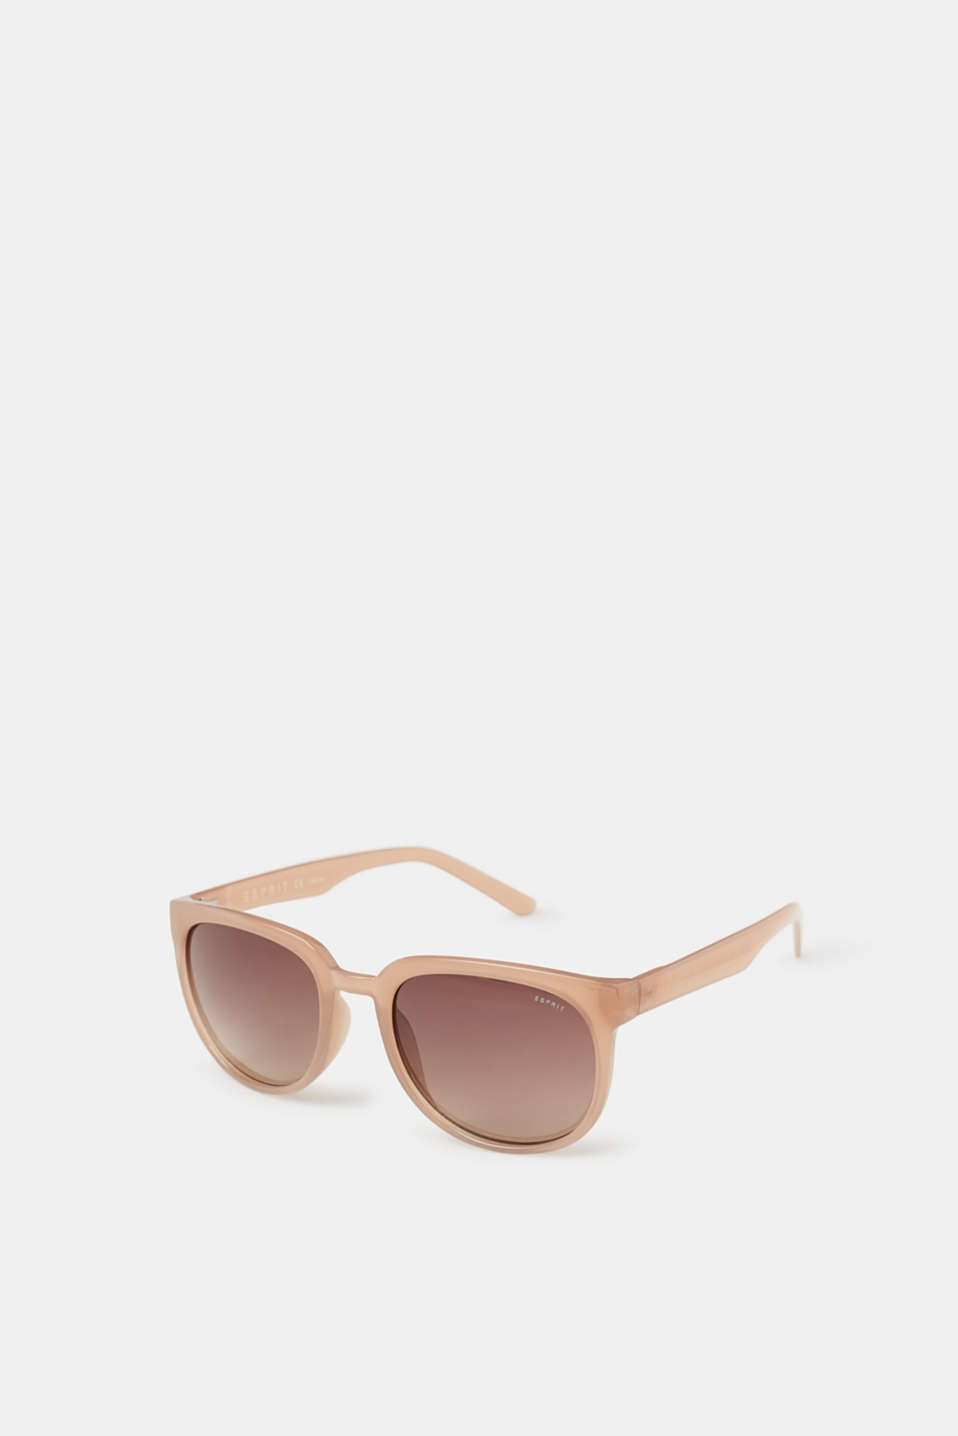 Your spring favourite: these sunglasses with a timeless shape and exciting trend colours.